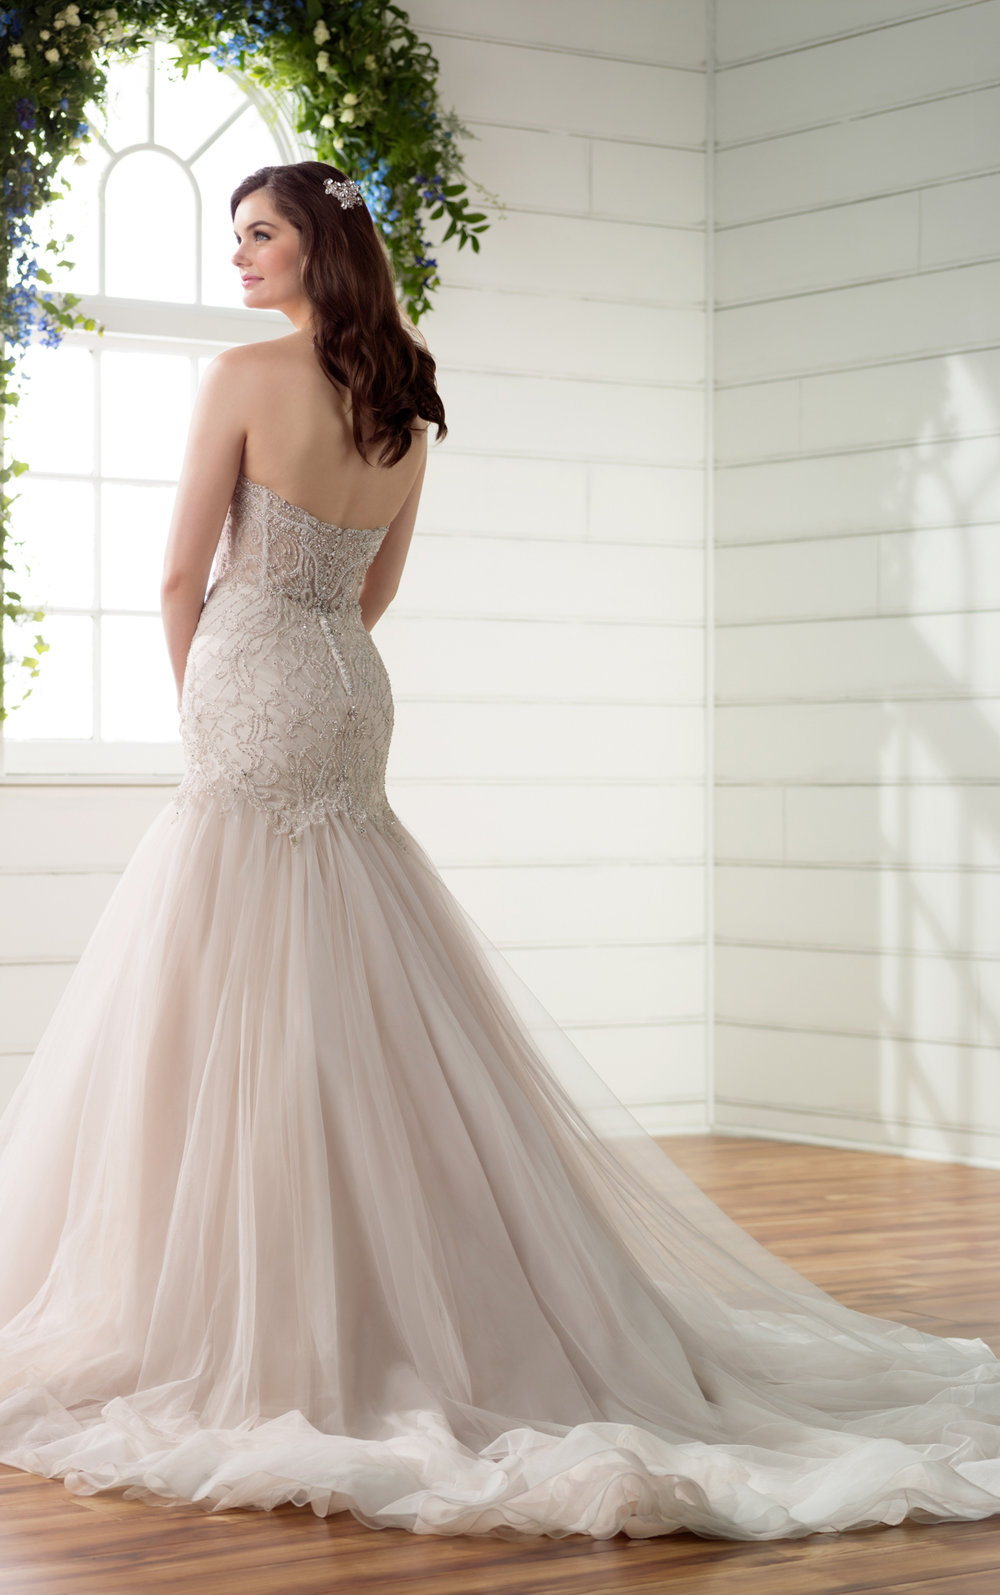 Strapless sweetheart neckline wedding dress